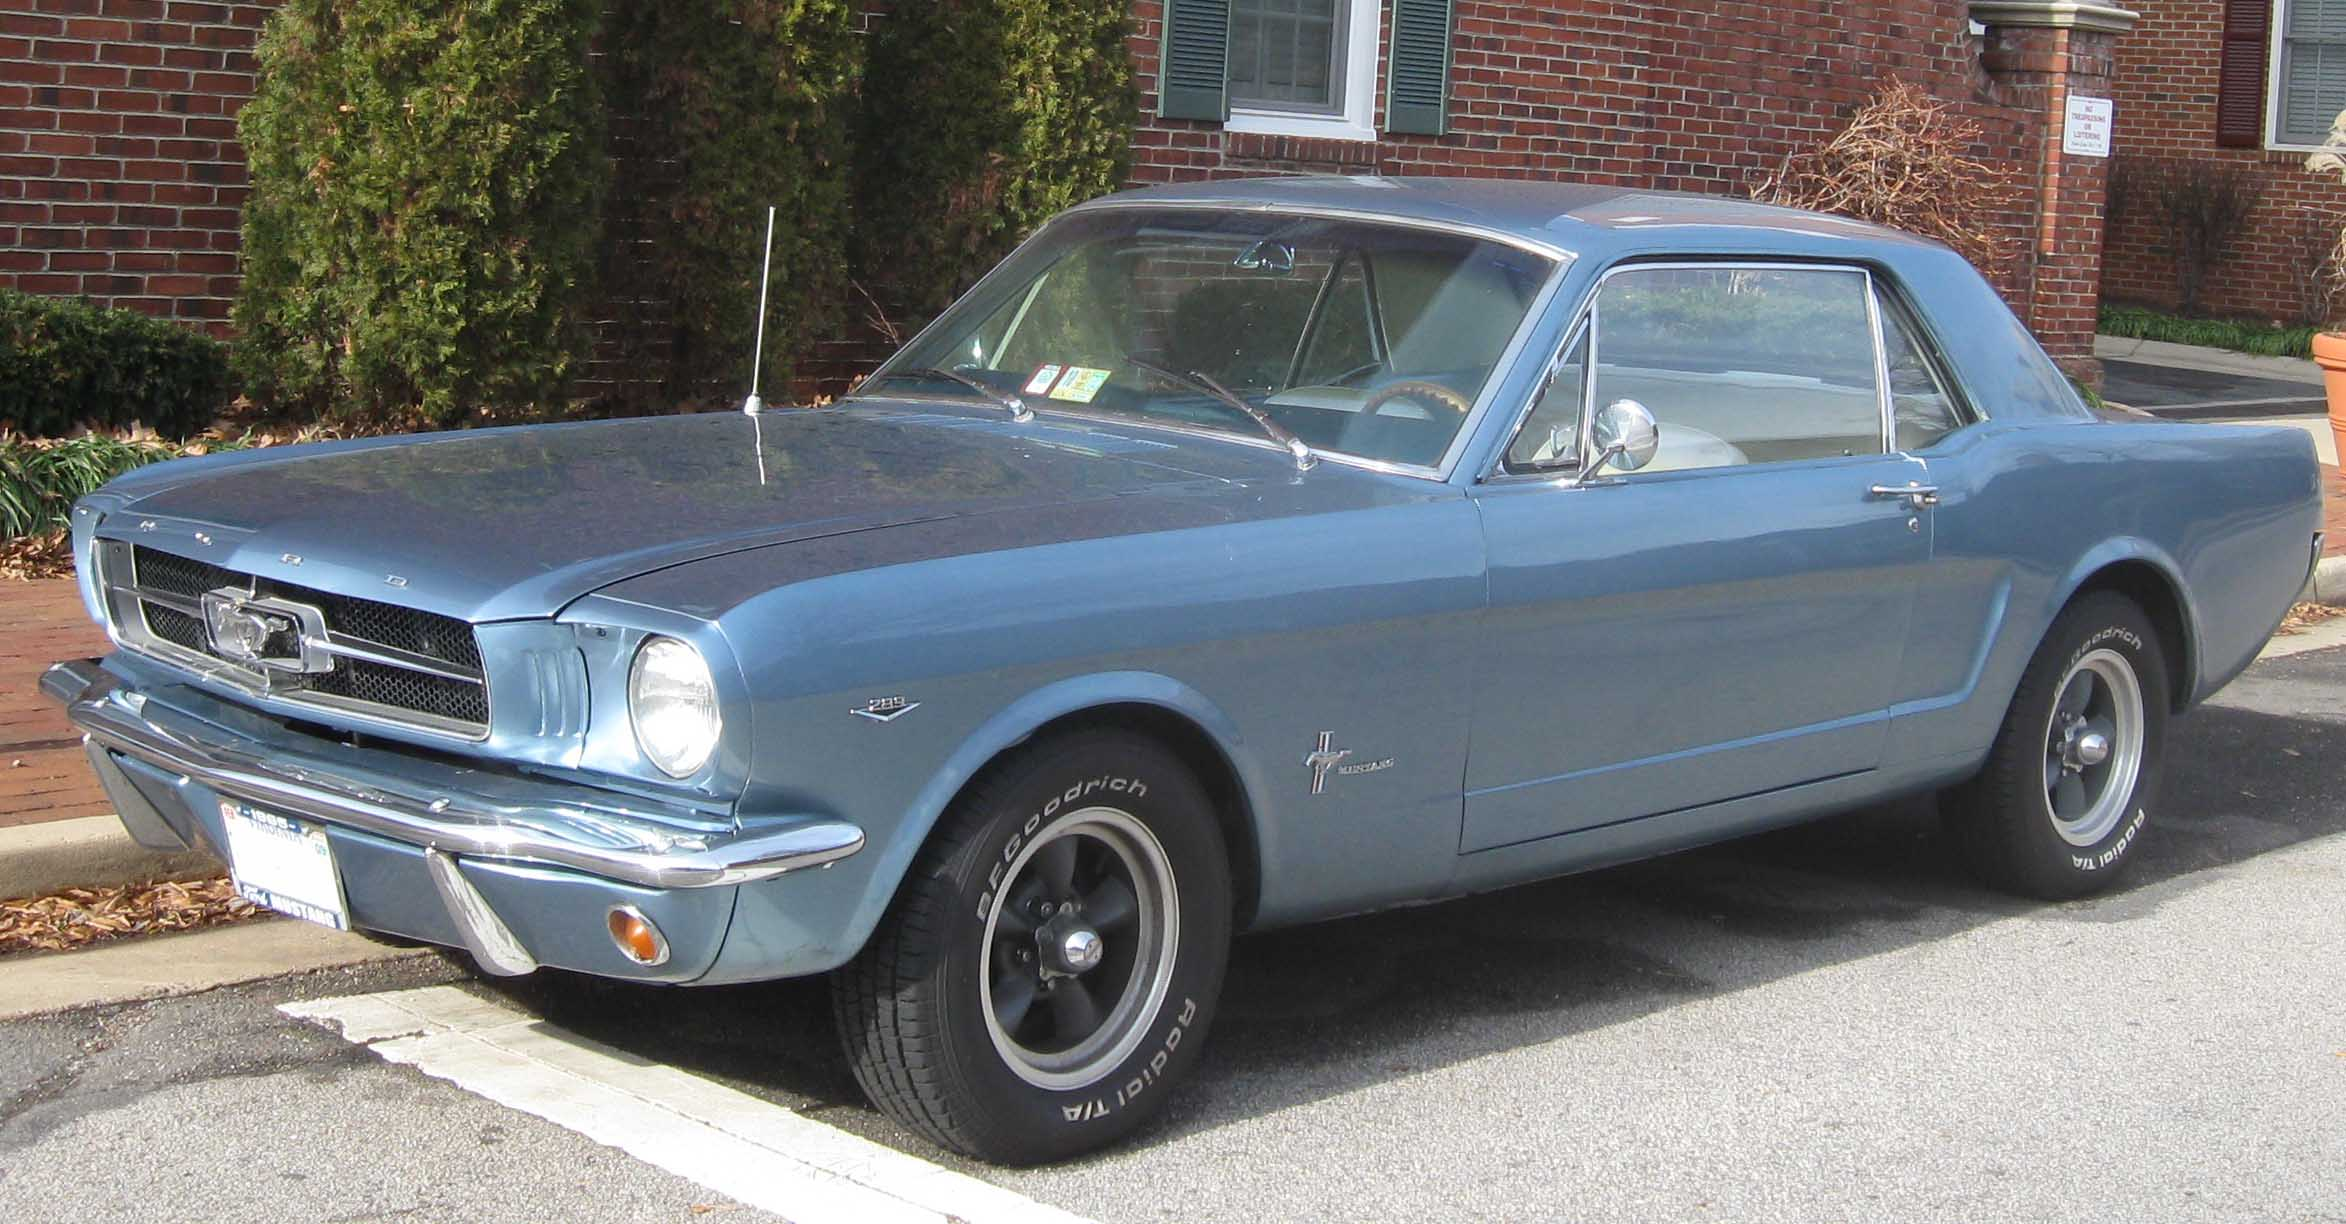 Ford Mustang 1965 Fuel Consumption